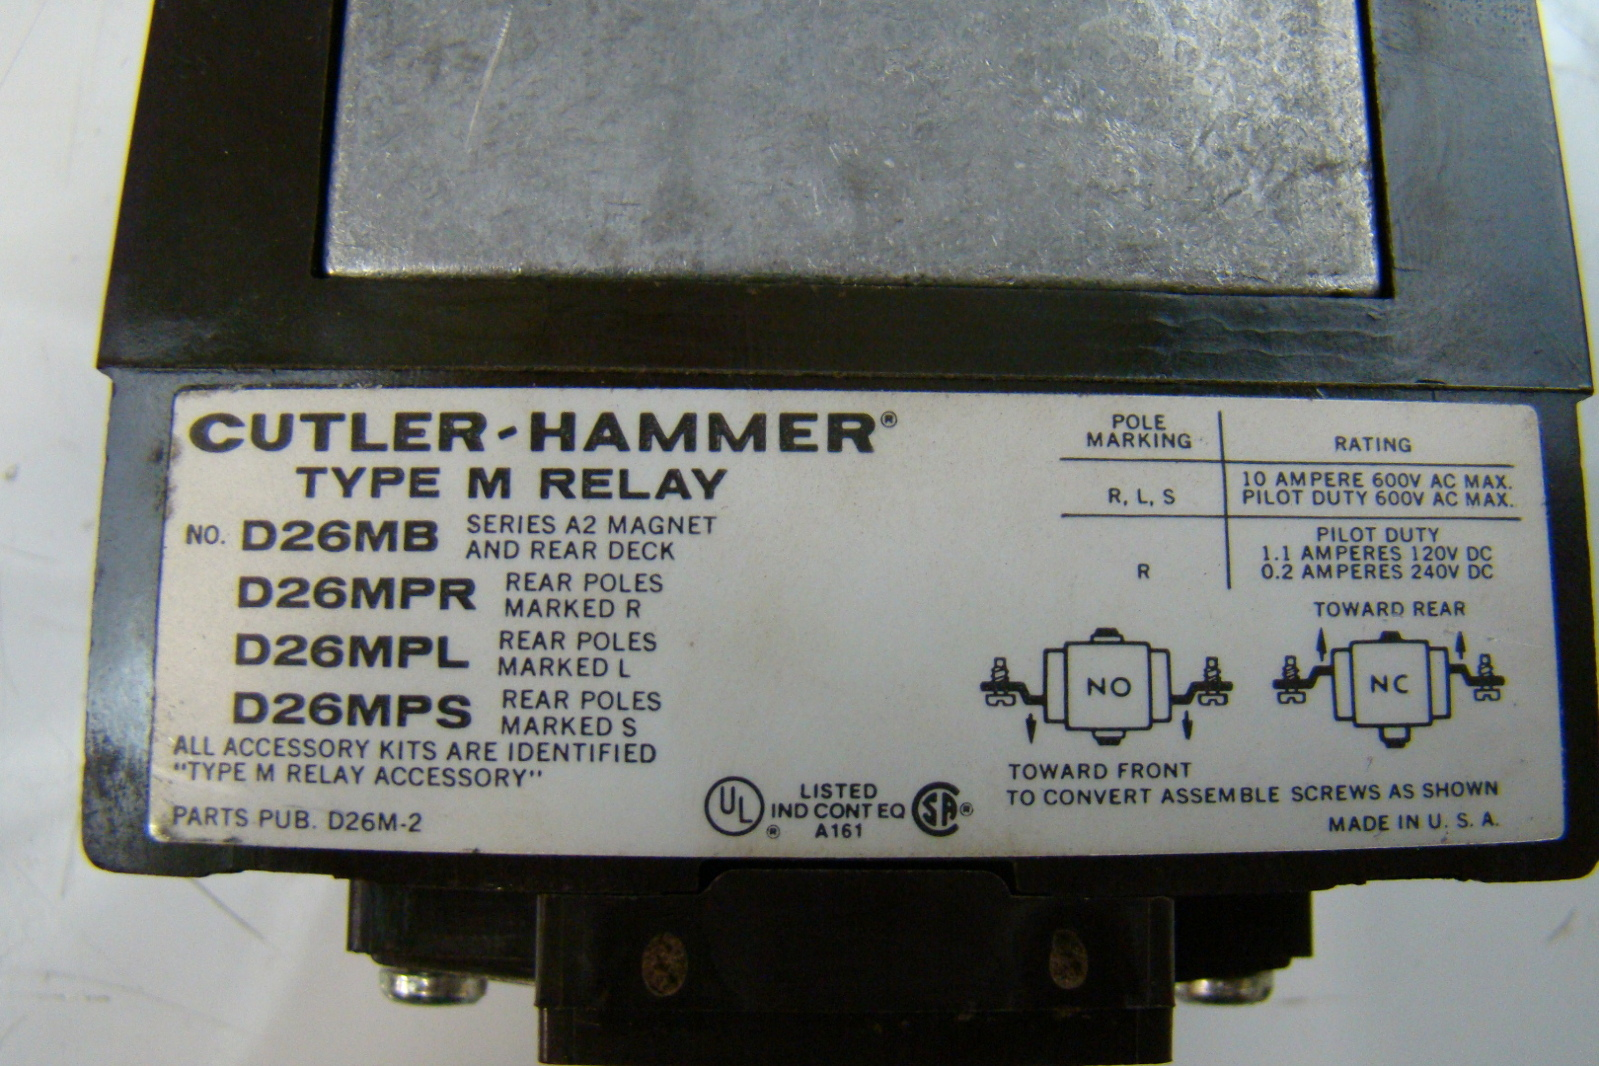 jf03011 cutler hammer 600v type m relay d26mb 9 cutler hammer 600v type m relay d26mb ebay cutler hammer type m relay wiring diagram at bayanpartner.co